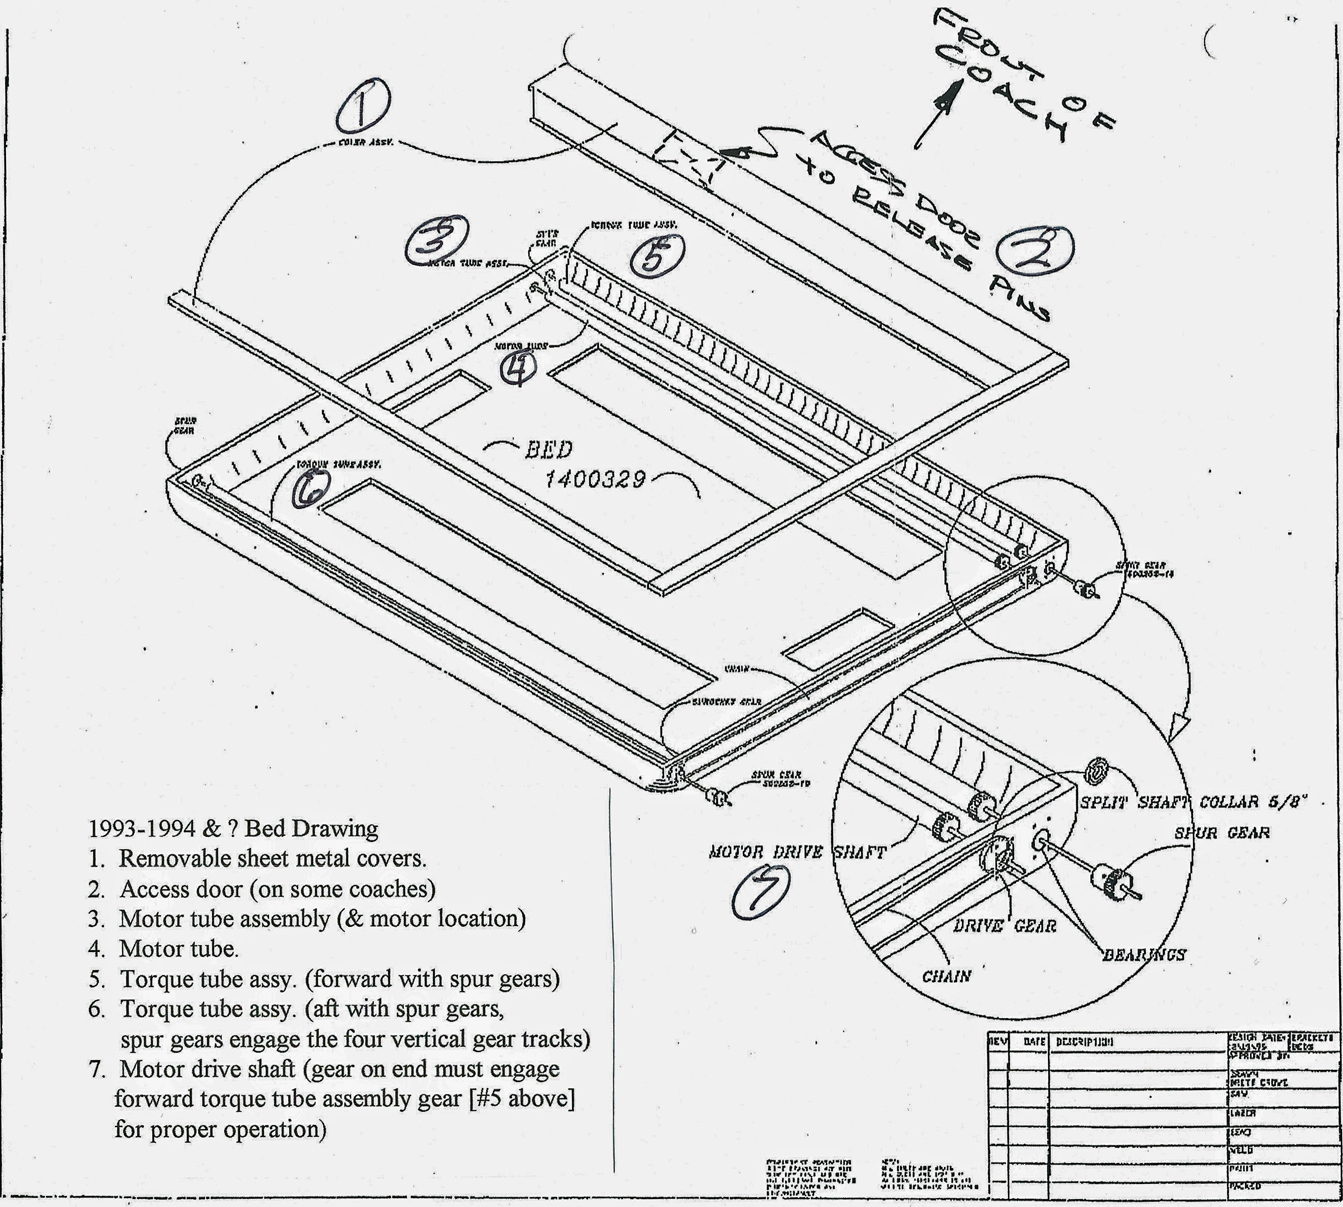 Harbor Freight Winch Mounting cket | Wiring Diagram Database on chicago winch parts diagram, trakker winch wiring diagram, ramsey 12000 winch wiring diagram, badland wireless remote wiring diagram, superwinch solenoid wiring diagram, 6.7 powerstroke diagram, pierce winch wiring diagram, superwinch 2500 wiring diagram, electric winch wiring diagram, atv winch wiring diagram, 4 post solenoid wiring diagram, mile marker winch wiring diagram, badland winches wireless remote diagram,